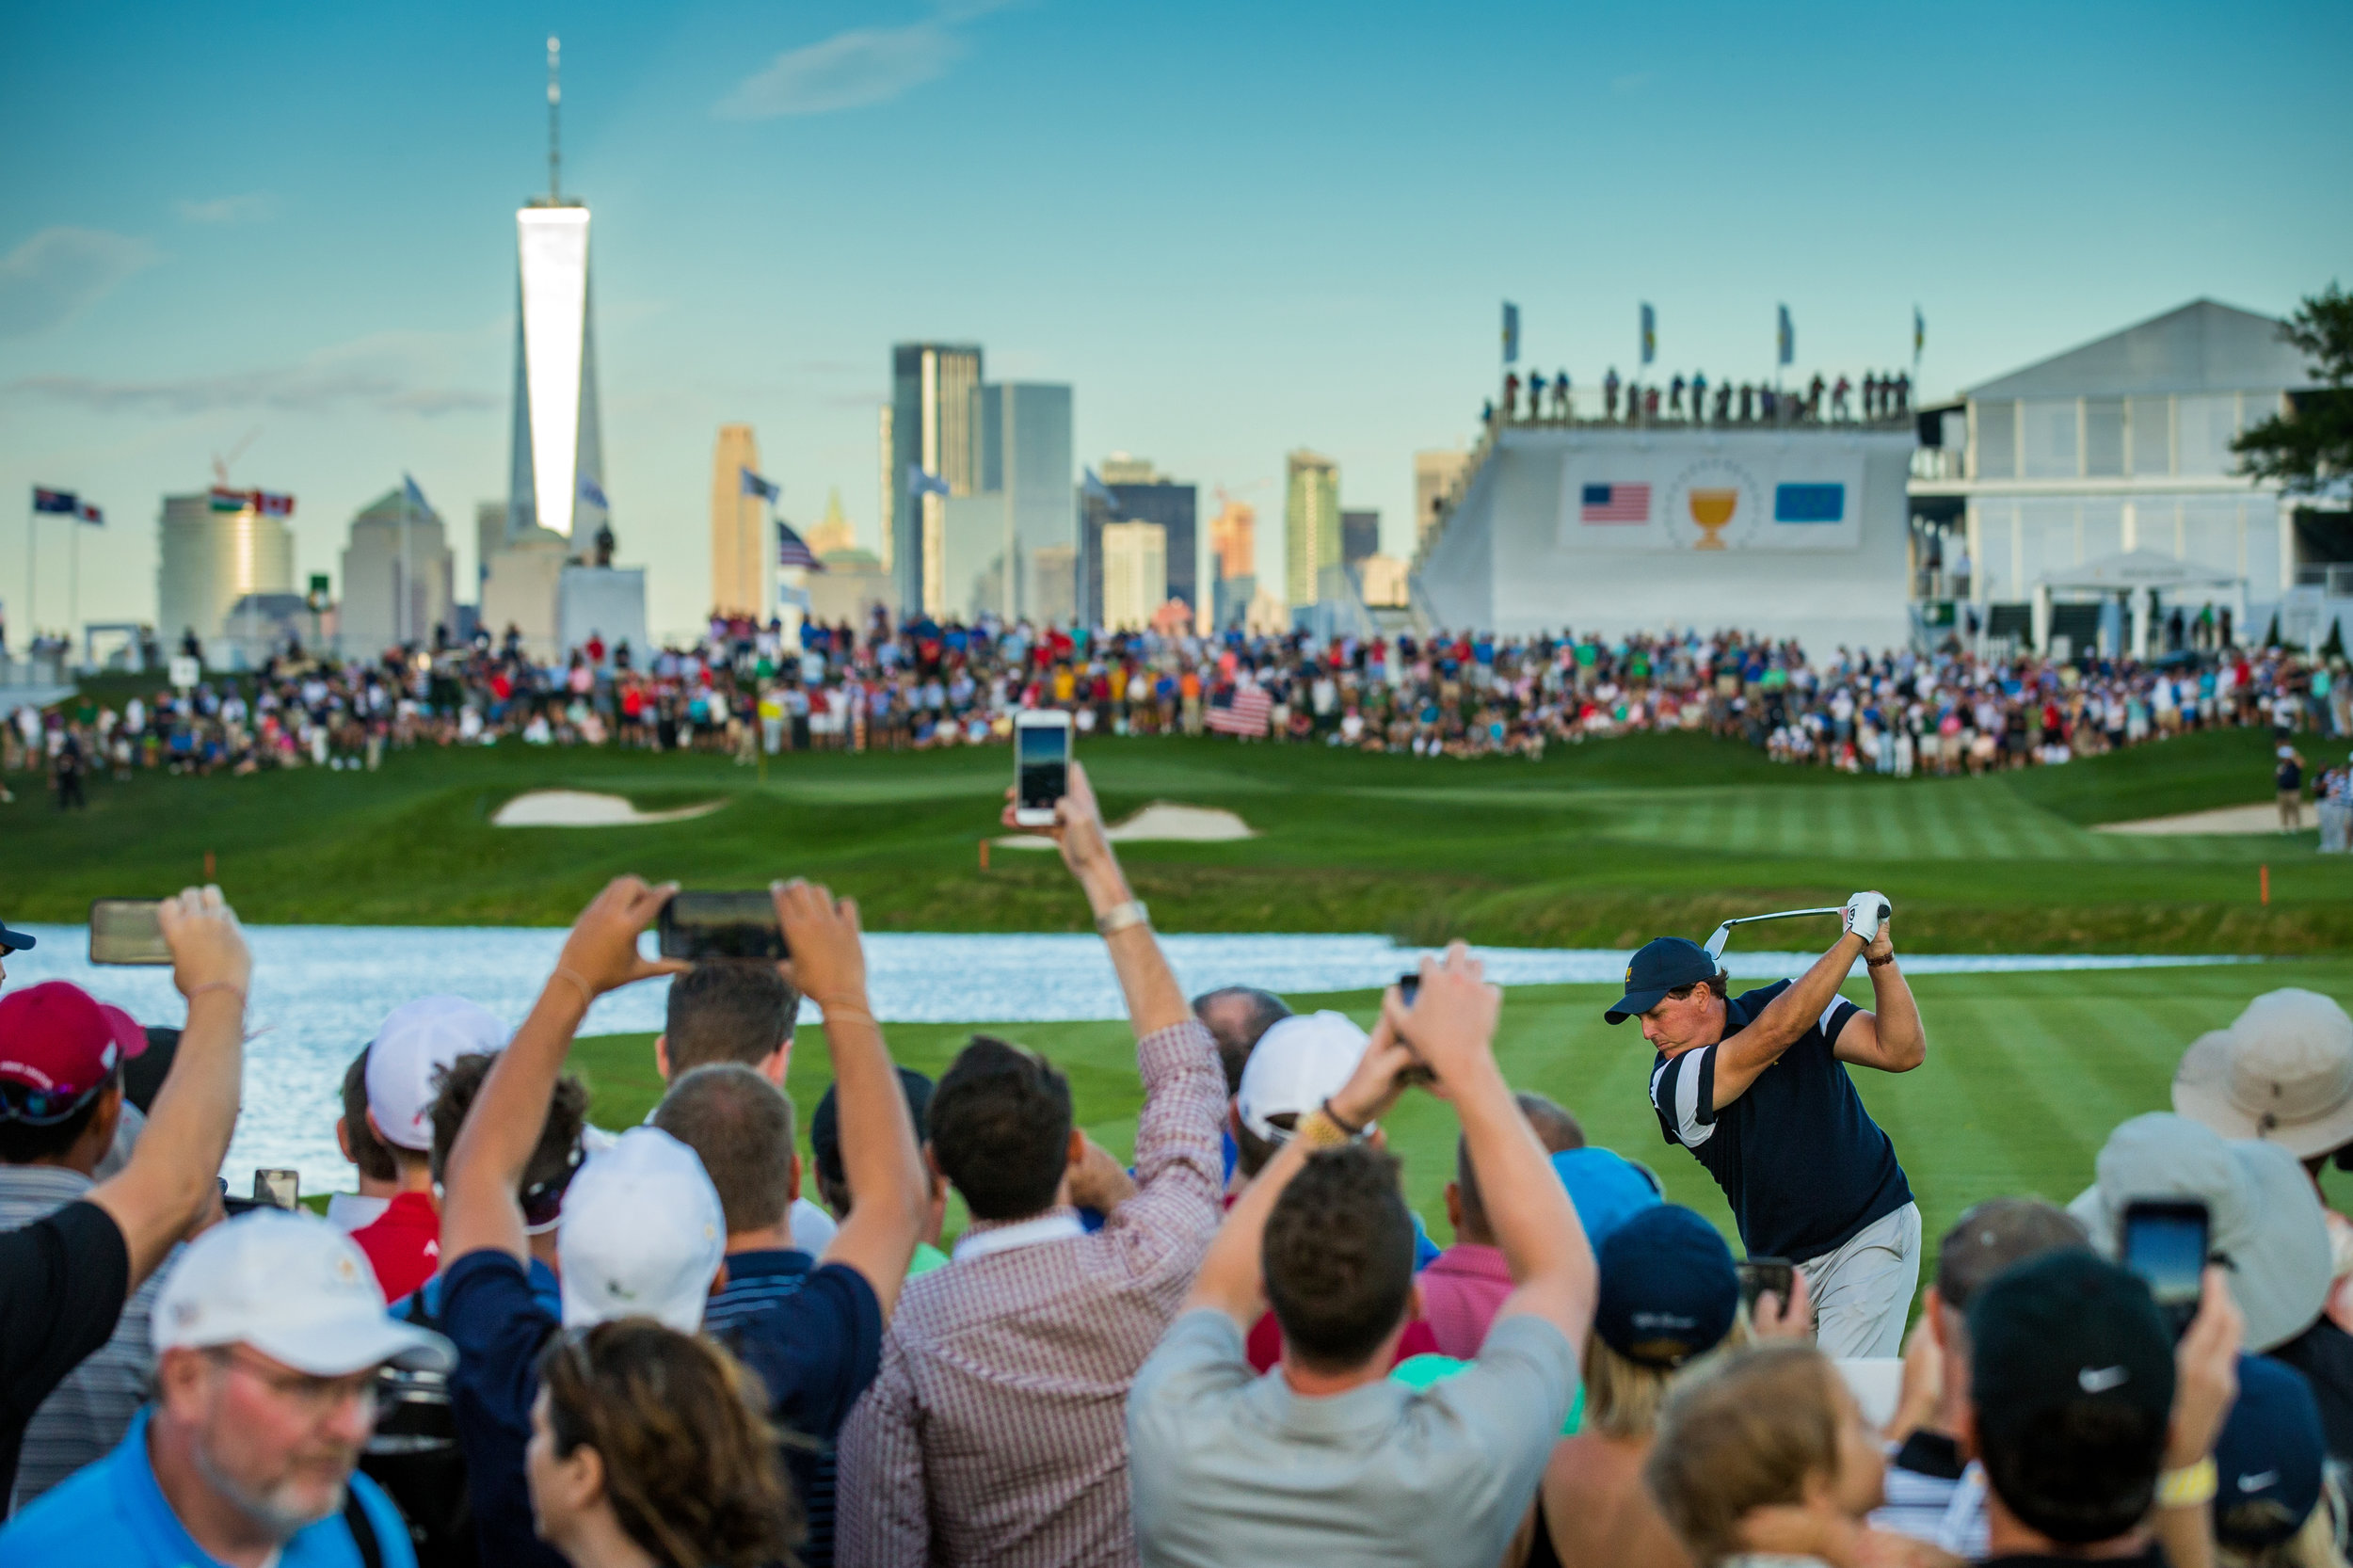 Phil Mickelson, 2017 Presidents Cup Matches.Liberty National Golf Club, Jersey City, New Jersey. Canon 1DX, EF 70-200mm f2.8L